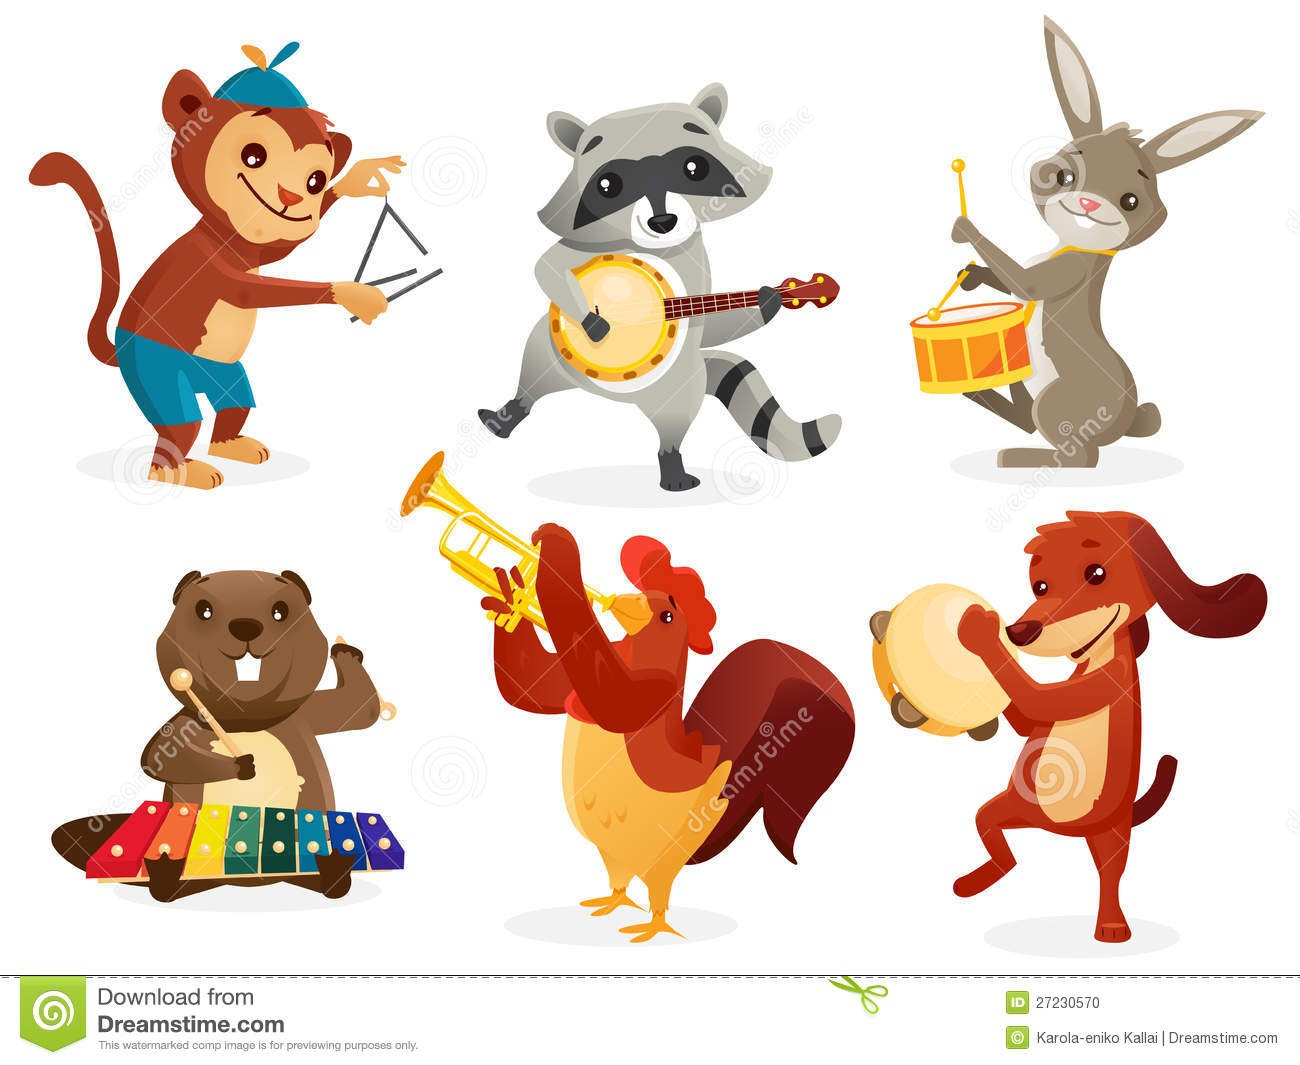 Animals playing musical instruments clipart jpg freeuse In Clip Art Animals Playing Musical Instruments 27230570 | Clip Art jpg freeuse